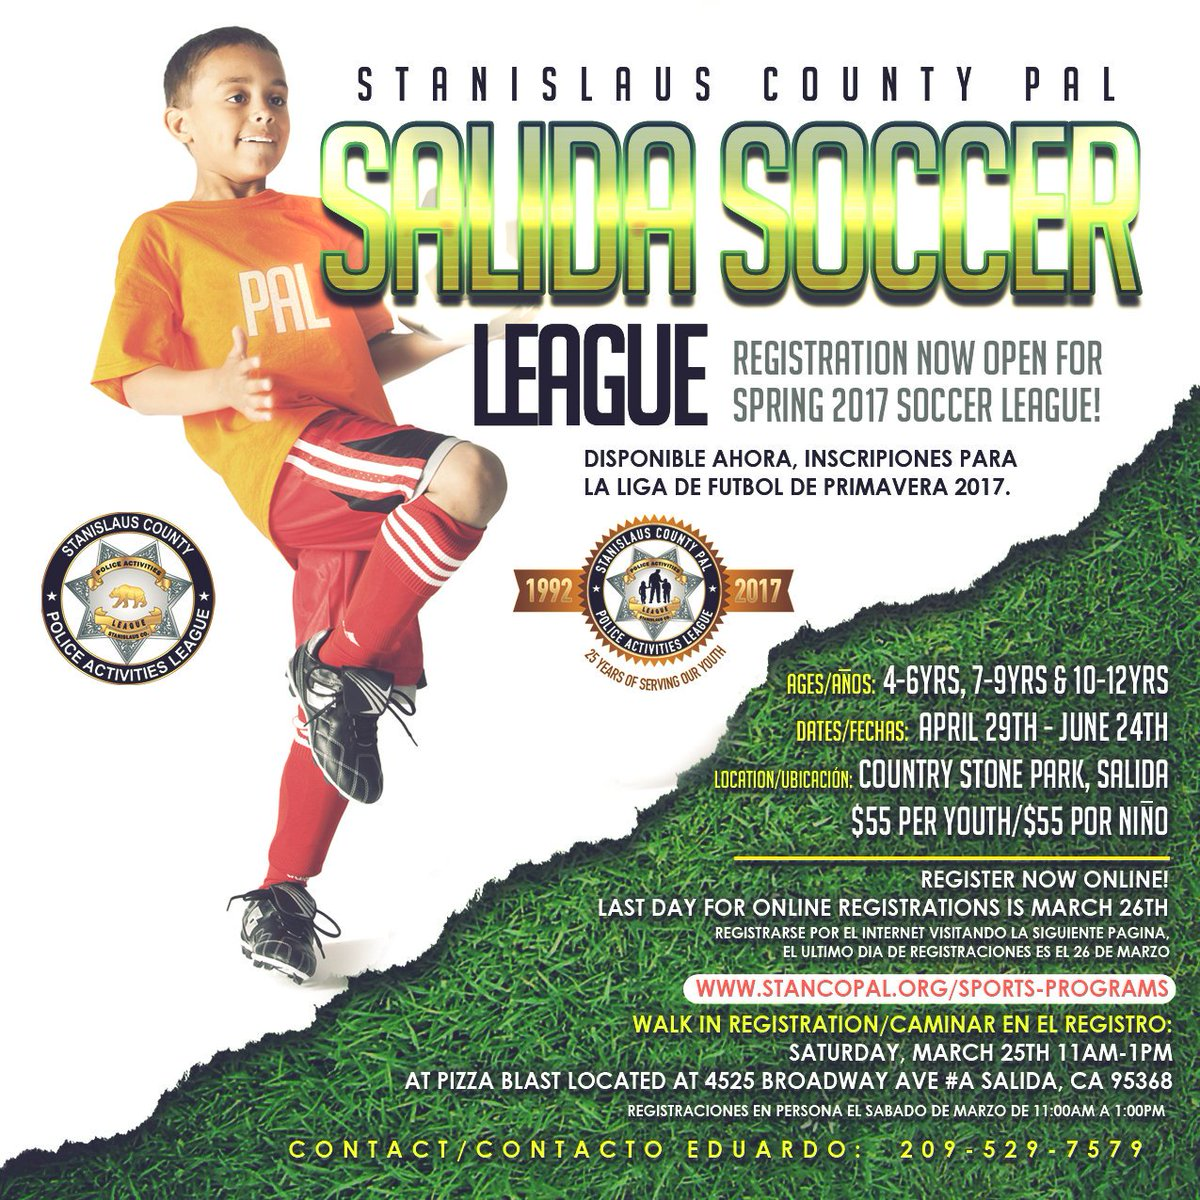 La liga de f tbol profesional laliga is a private non profit sports - Stanislaus Pal On Twitter Registration Going On Now Register Today Salidacanews Https T Co 9assknrlr8